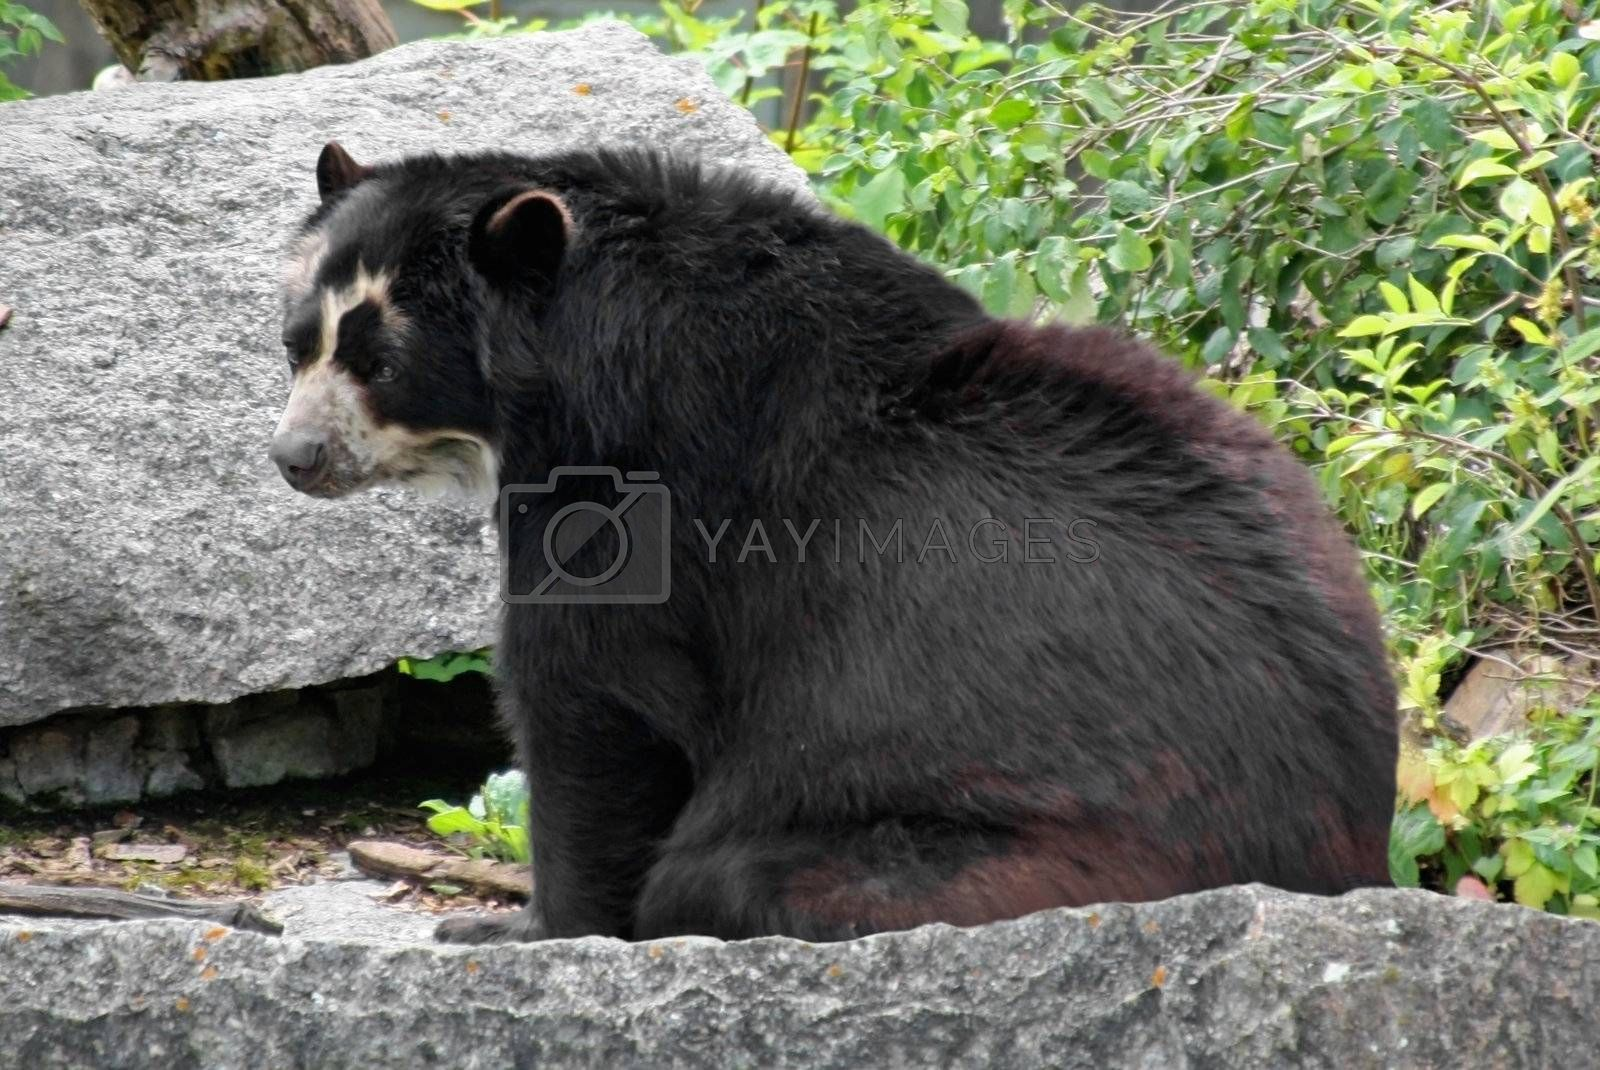 This image shows a portrait from a Andean bear